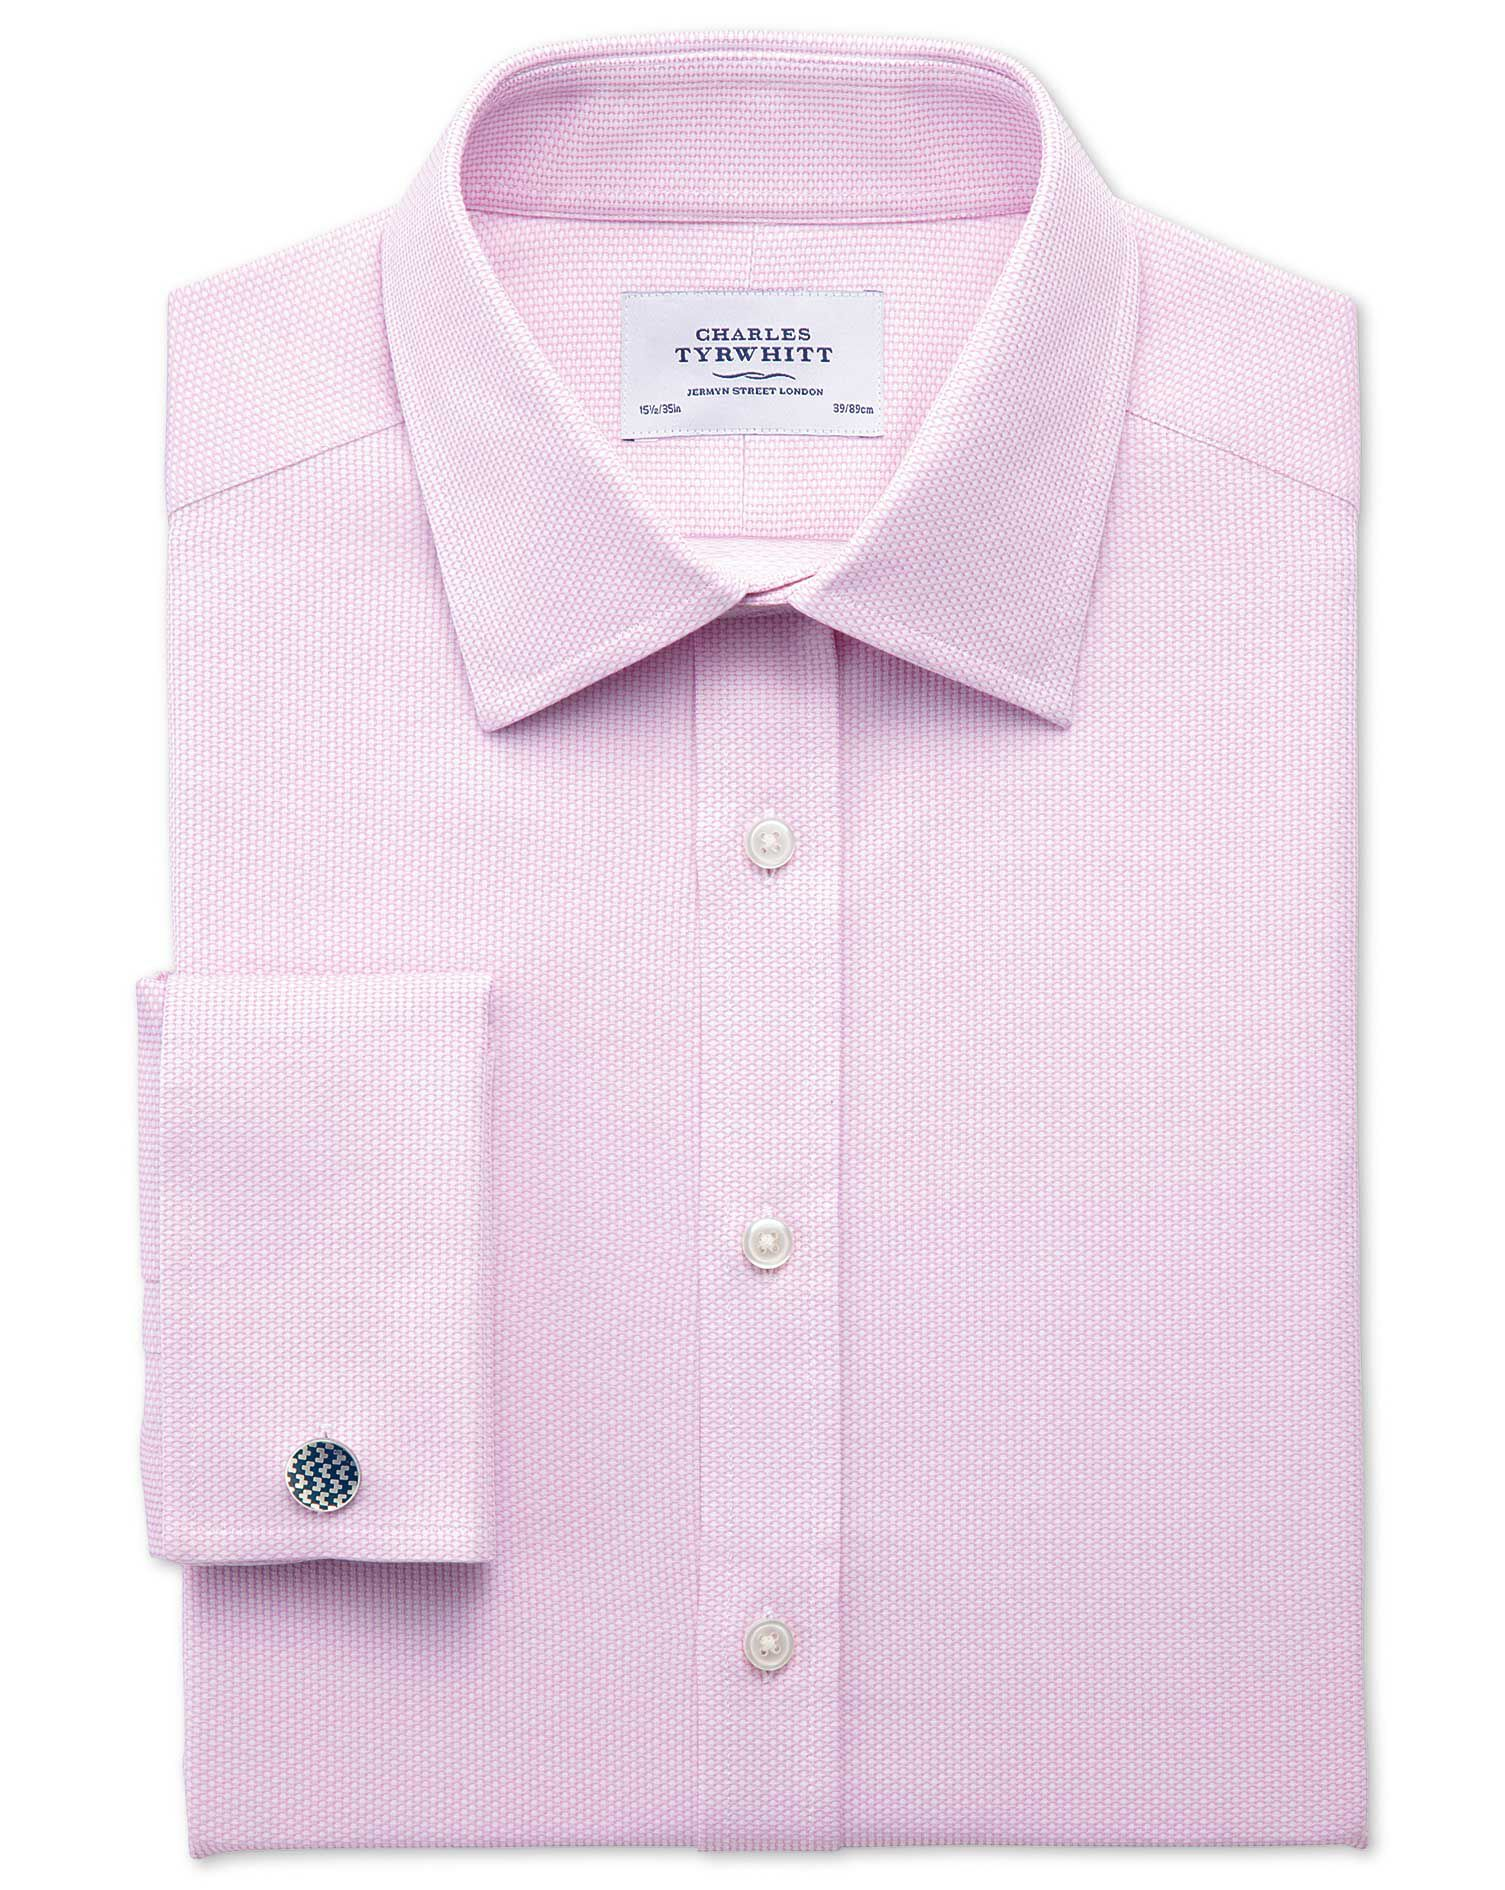 Extra Slim Fit Egyptian Cotton Diamond Texture Pink Formal Shirt Single Cuff Size 14.5/33 by Charles